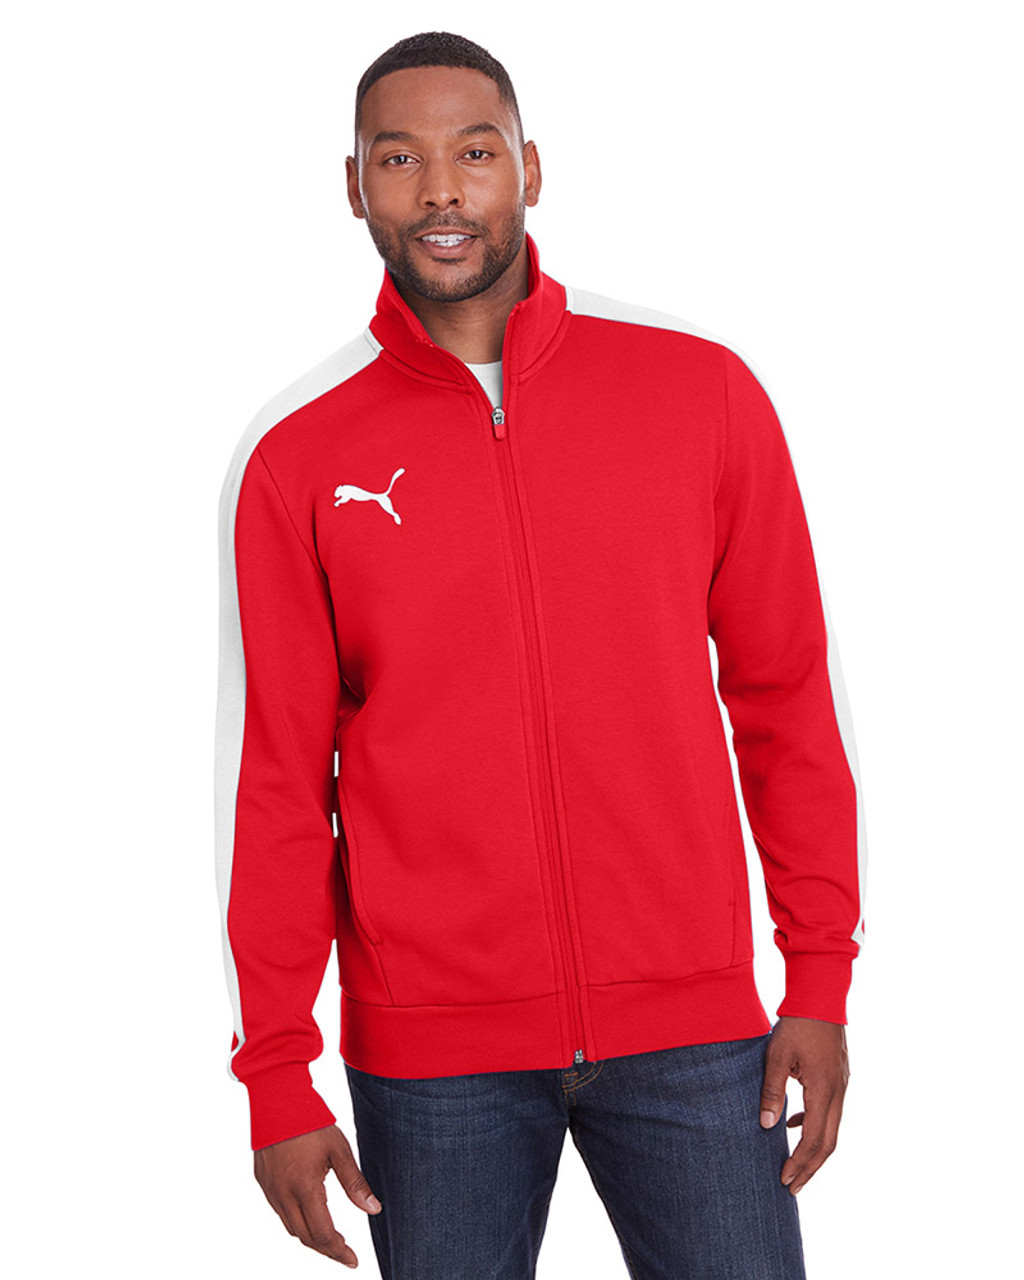 High Risk Red/Puma White - 597021 Puma Sport Adult P48 Fleece Track Jacket | Blankclothing.ca